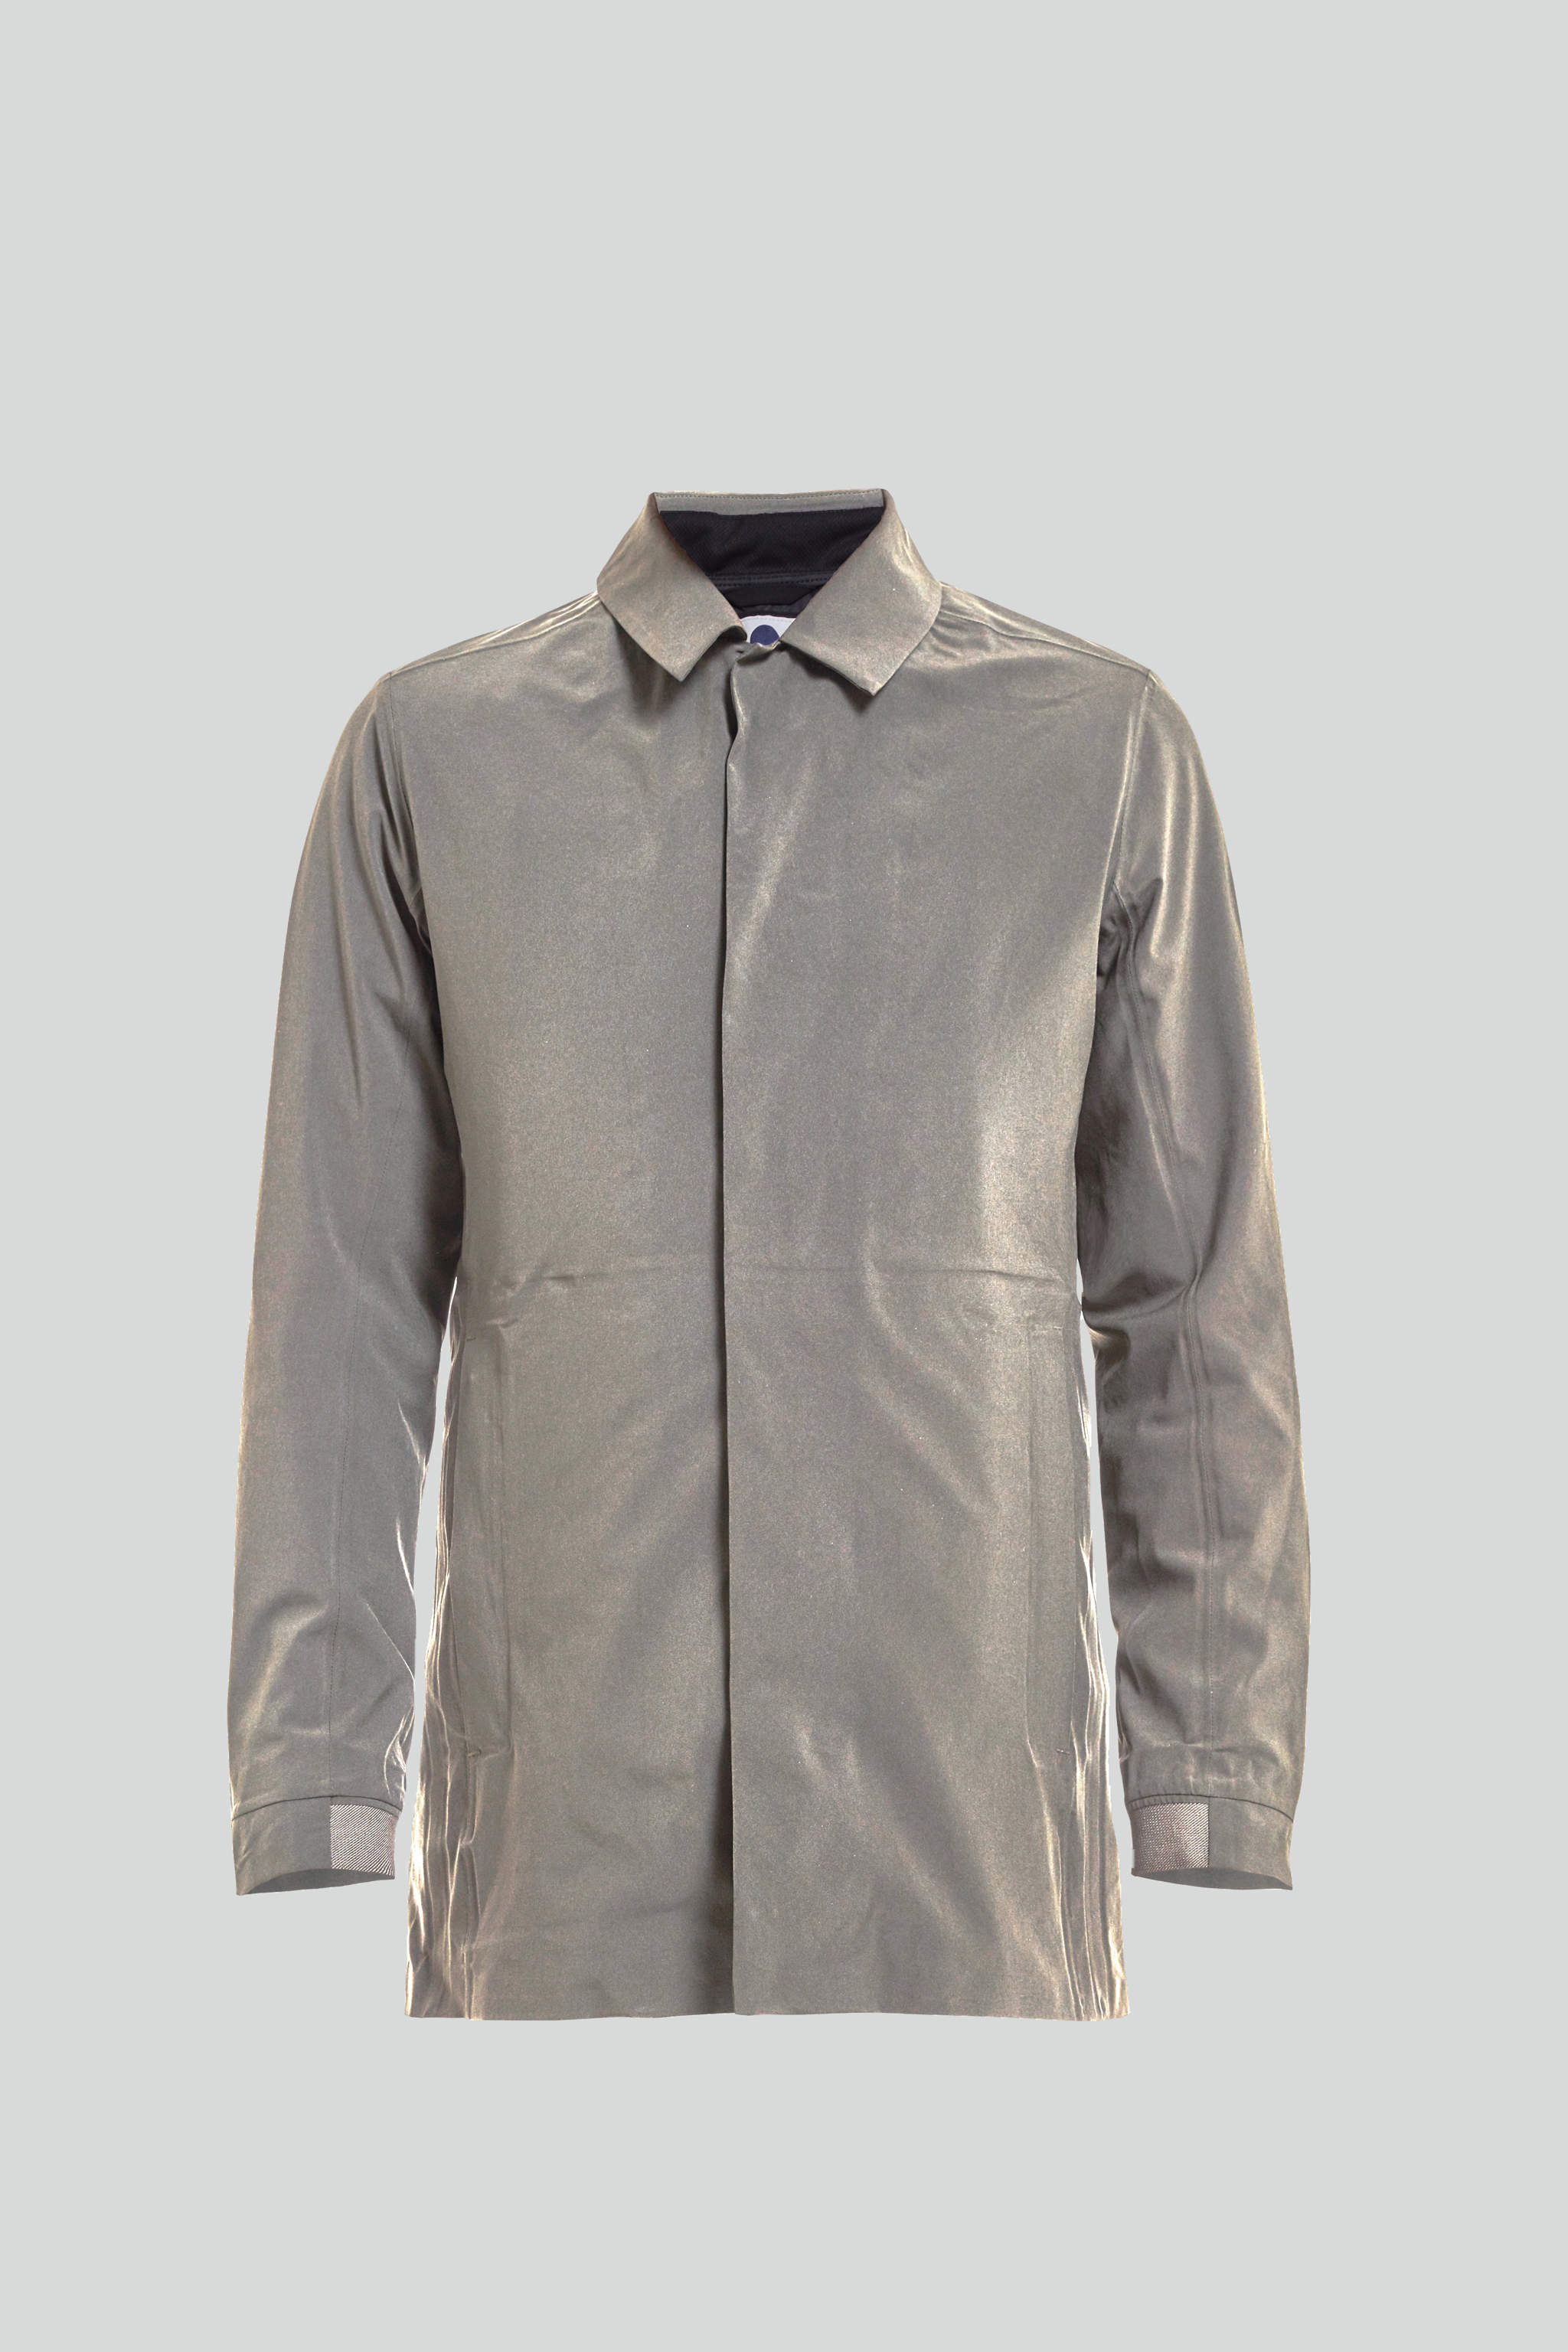 Double Bryan 8140 Technical Jacket